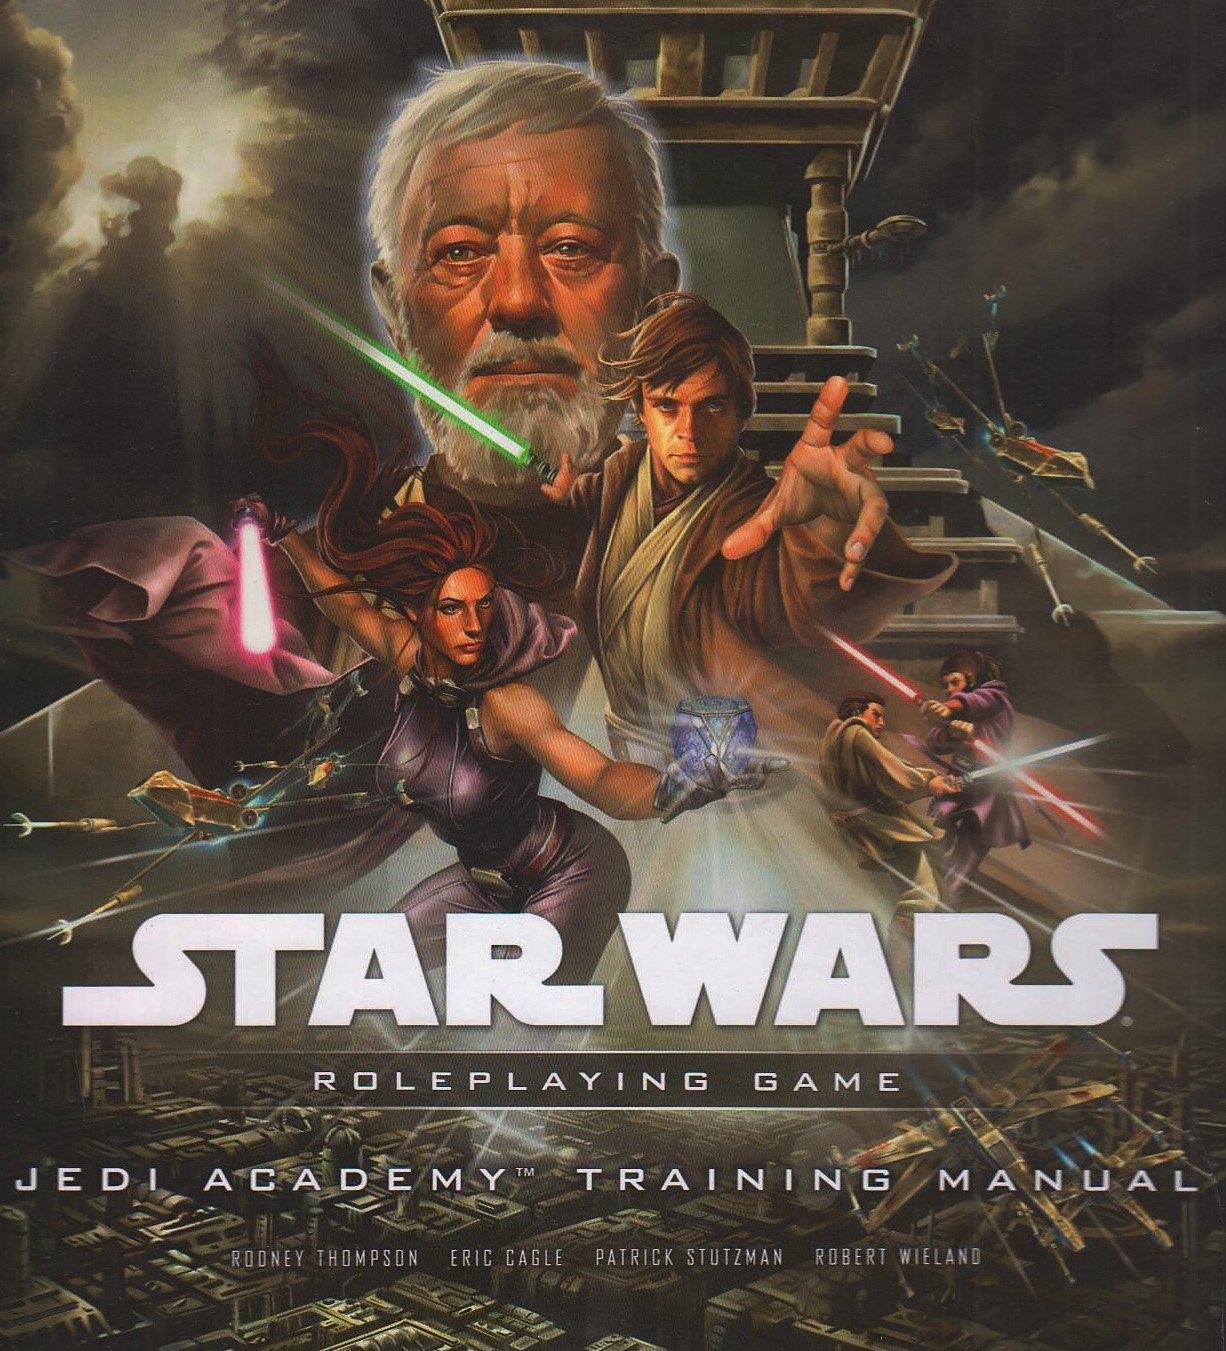 Star Wars: Jedi Academy Training Manual